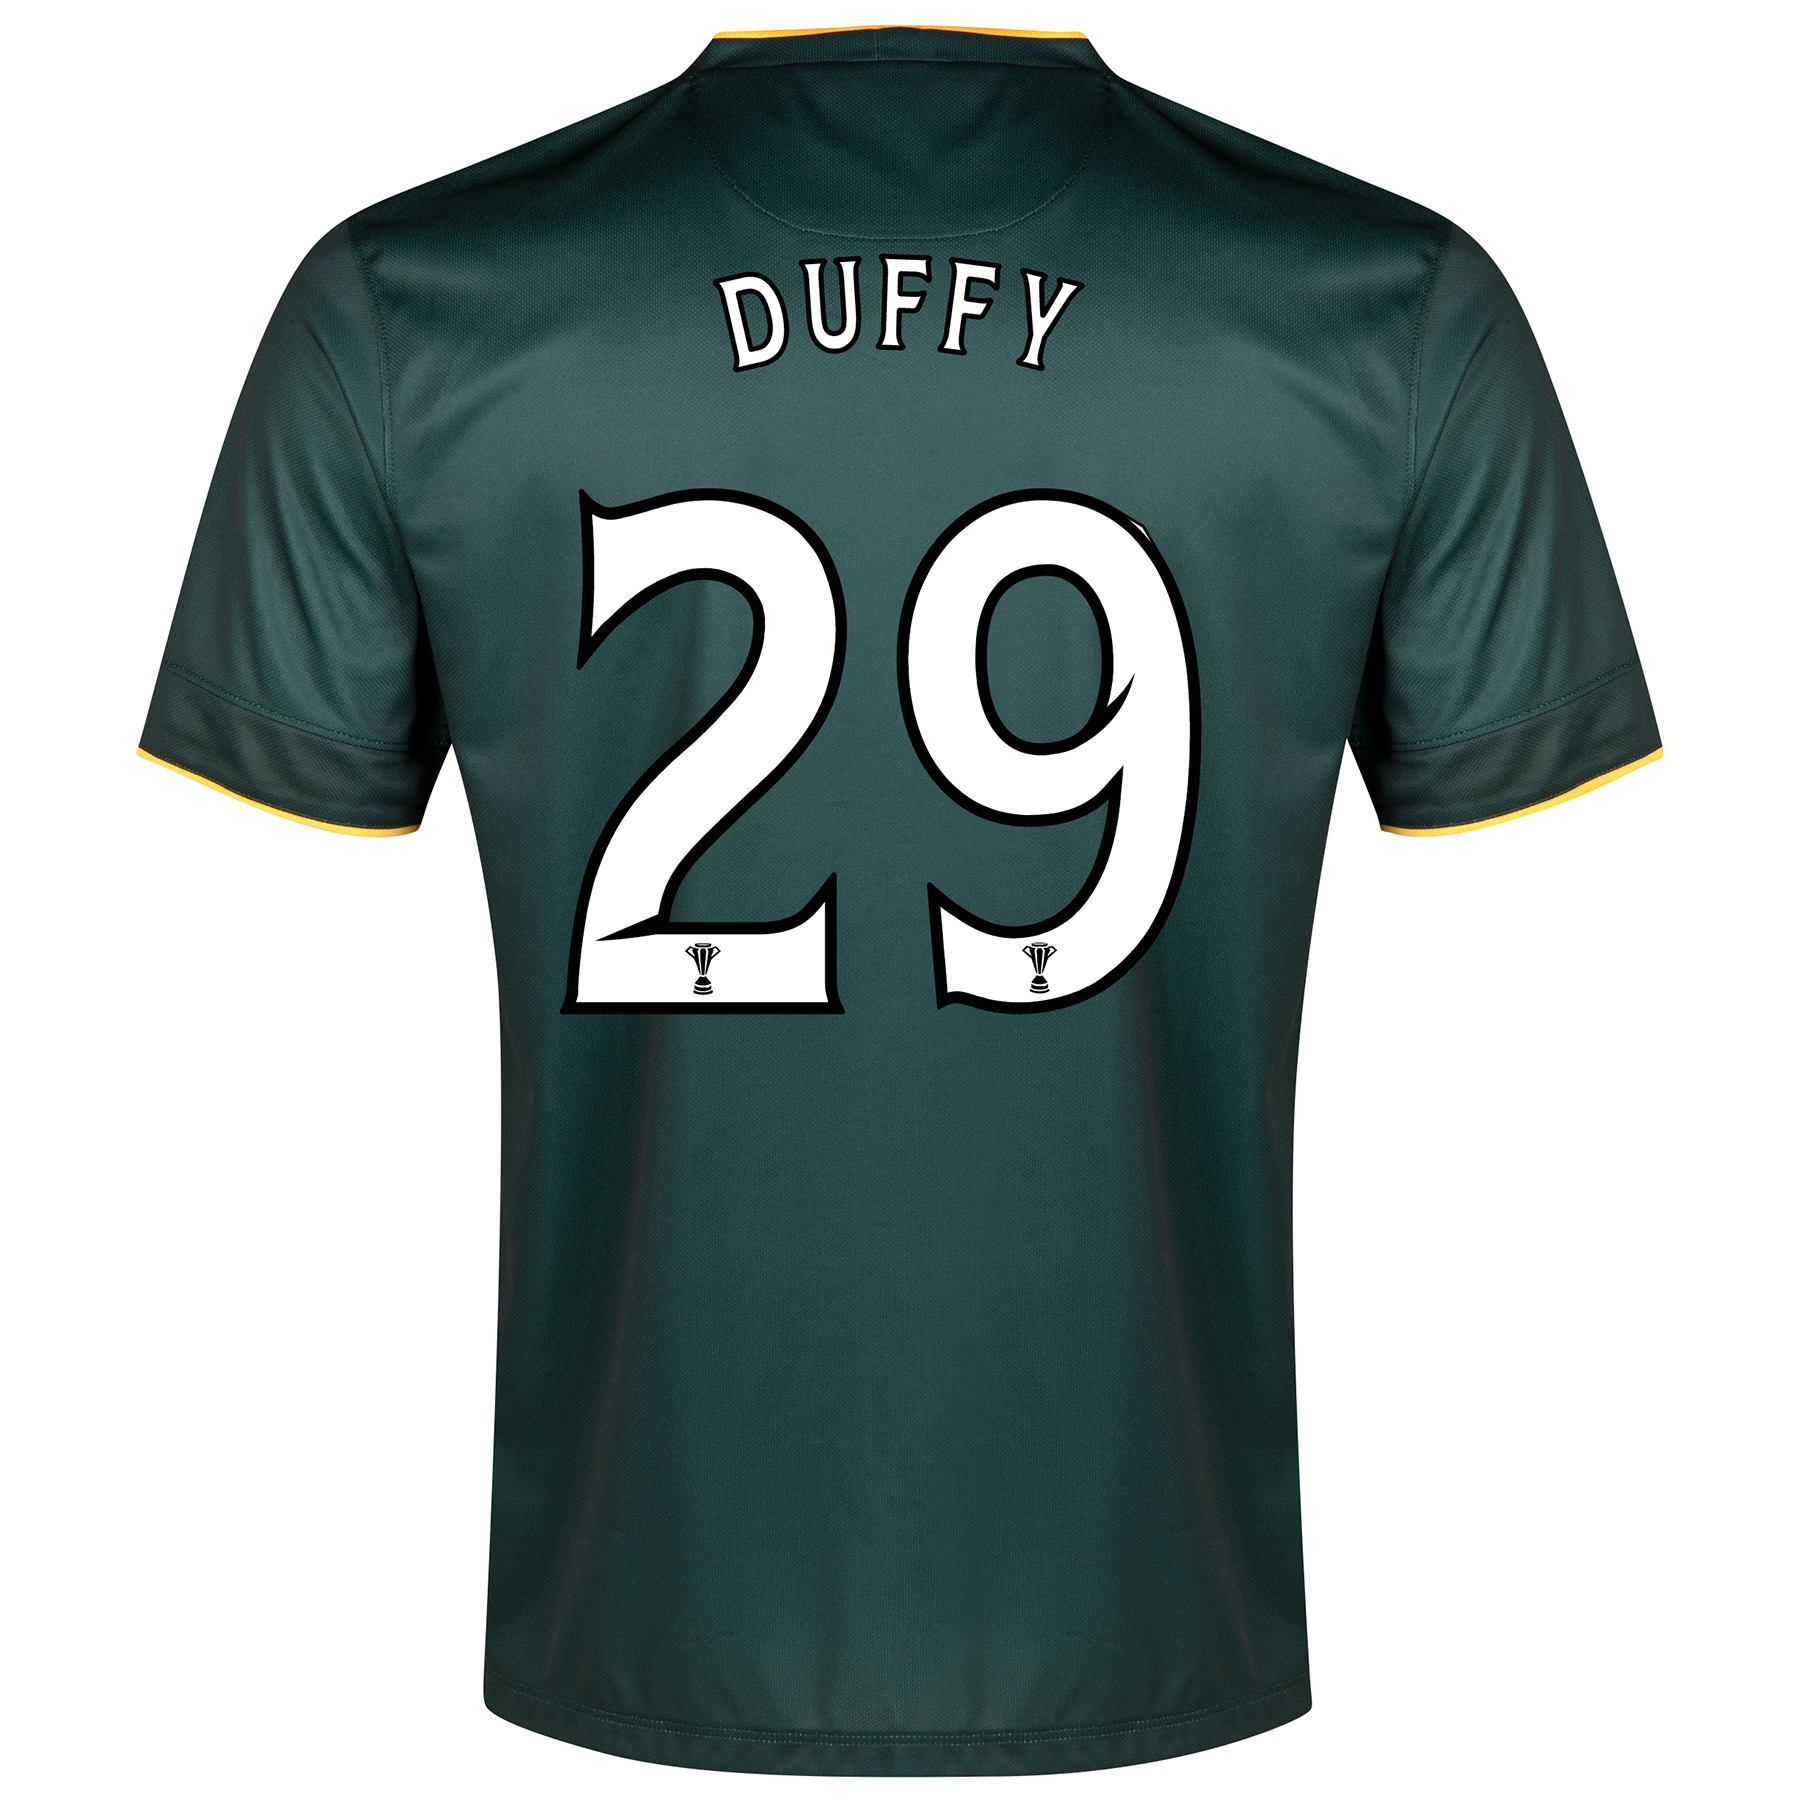 Celtic Away Shirt 2014/15 - With Sponsor Green with Duffy 29 printing